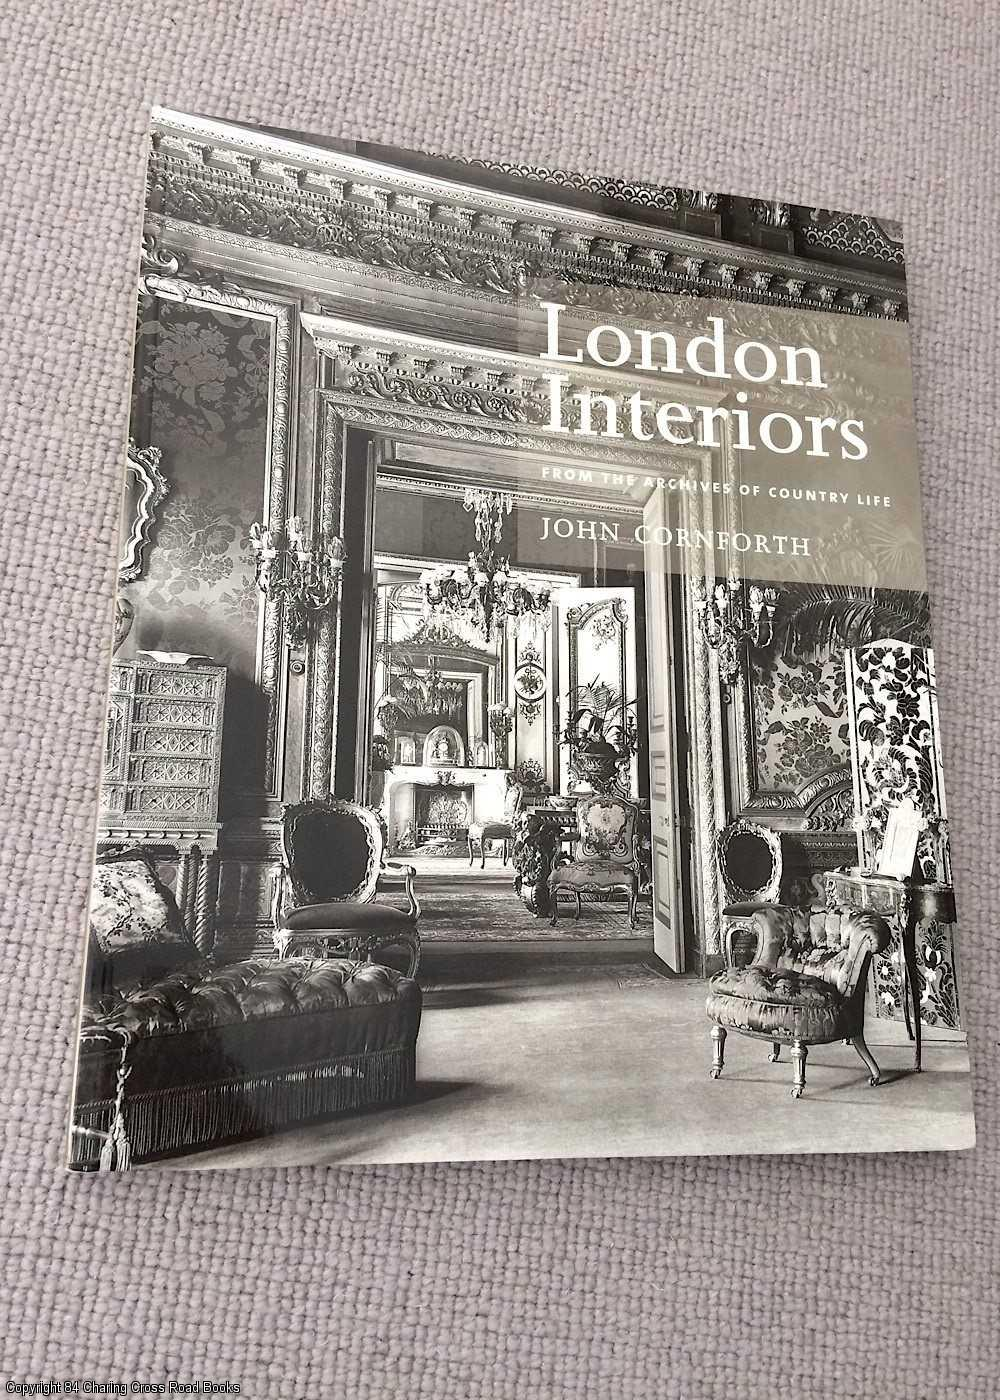 CORNFORTH, JOHN - London Interiors: From the Archives of Country Life